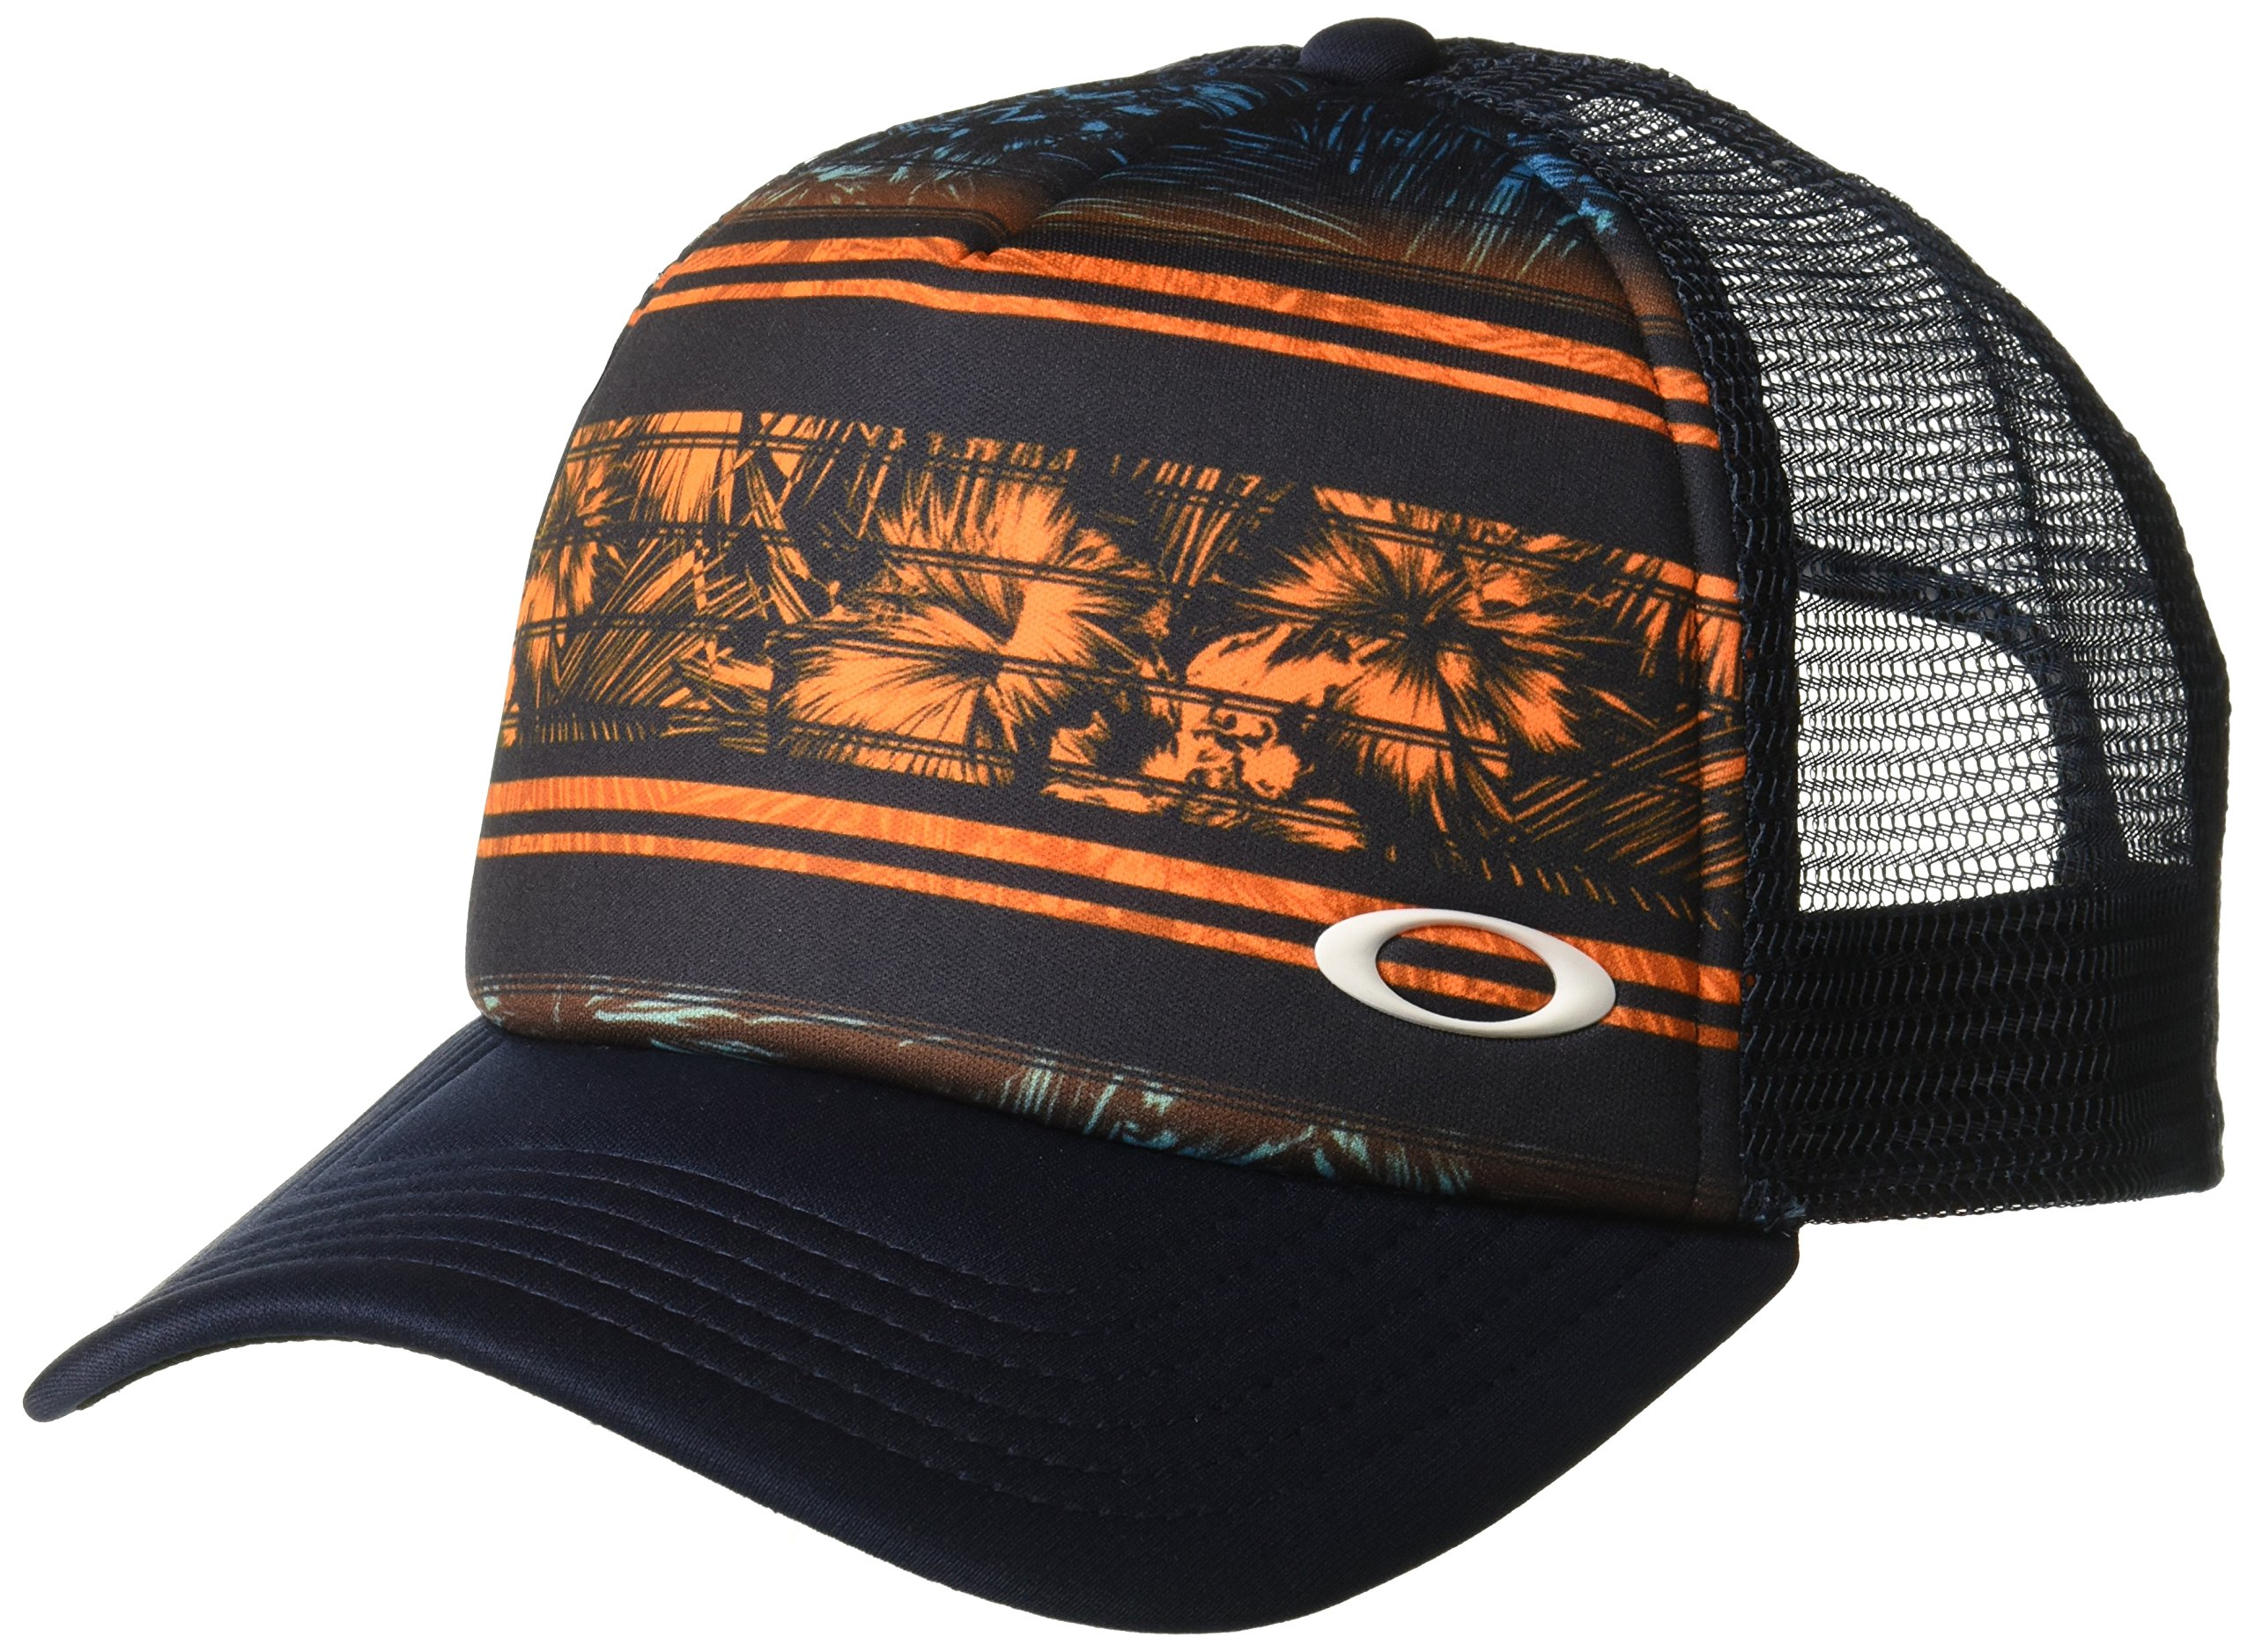 new style a85e4 79122 Galleon - Oakley Men s Mesh Sublimated Trucker Hat, Neon Orange, One Size Fits  All